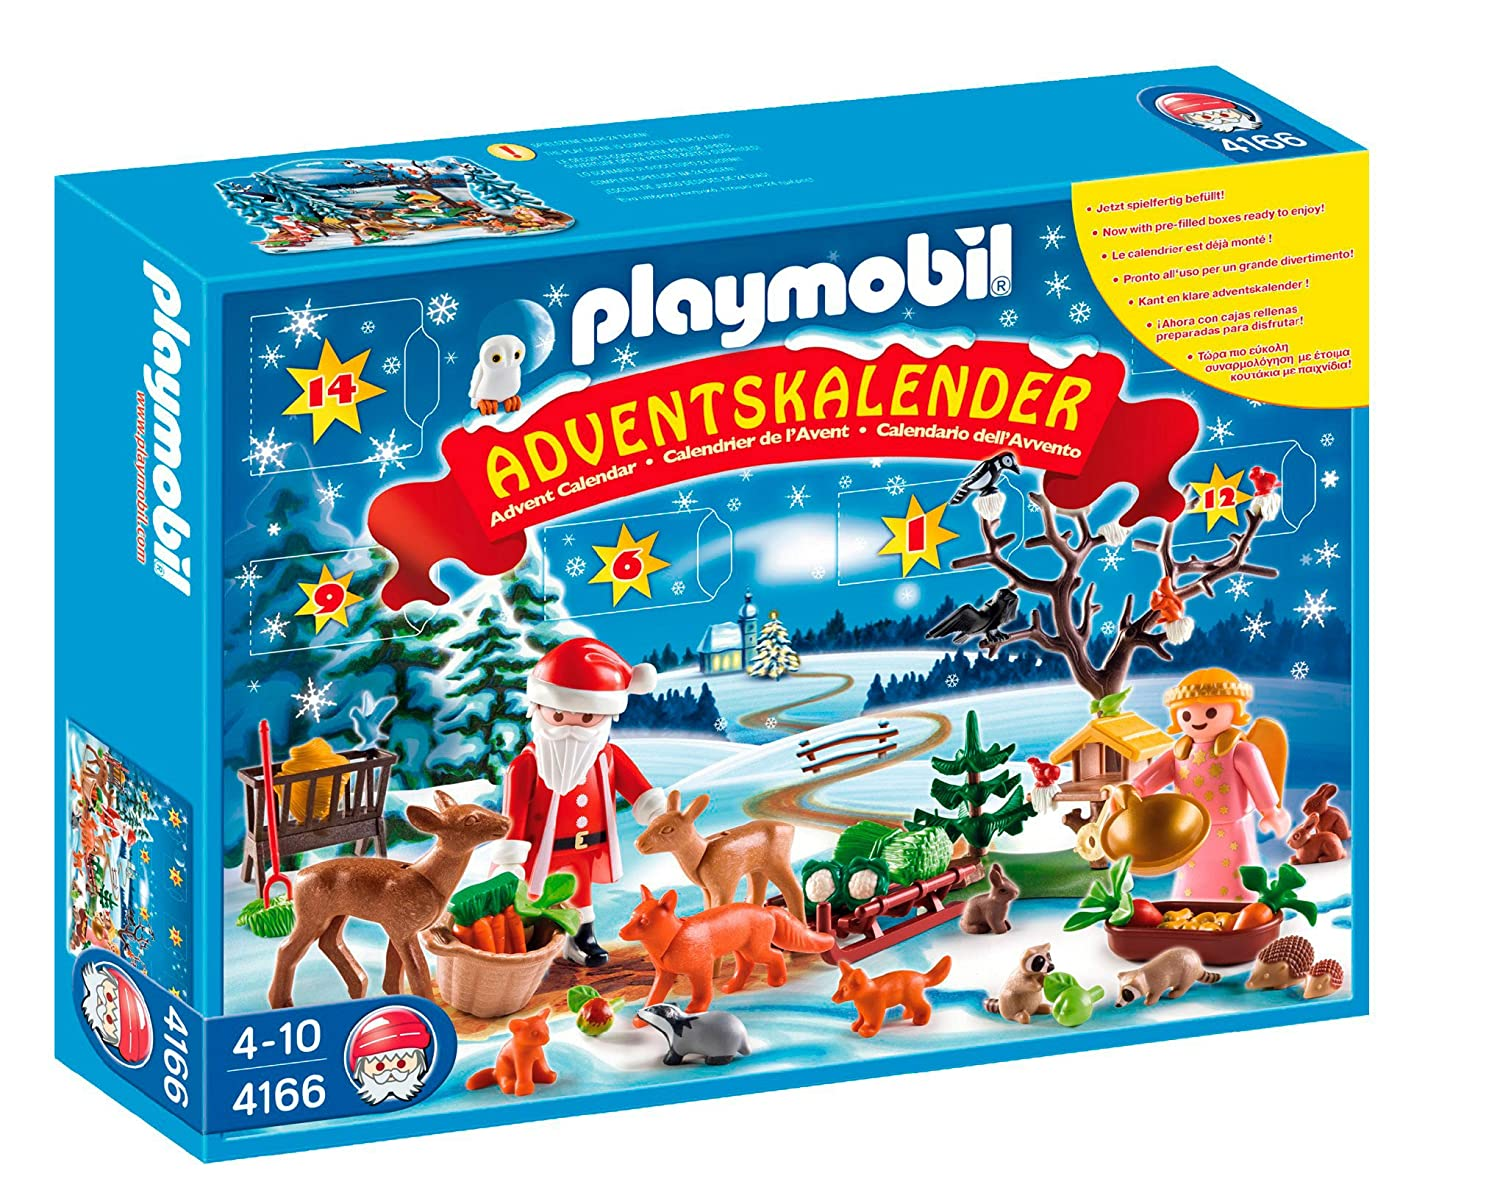 cool christmas playmobil sets and toys. Black Bedroom Furniture Sets. Home Design Ideas